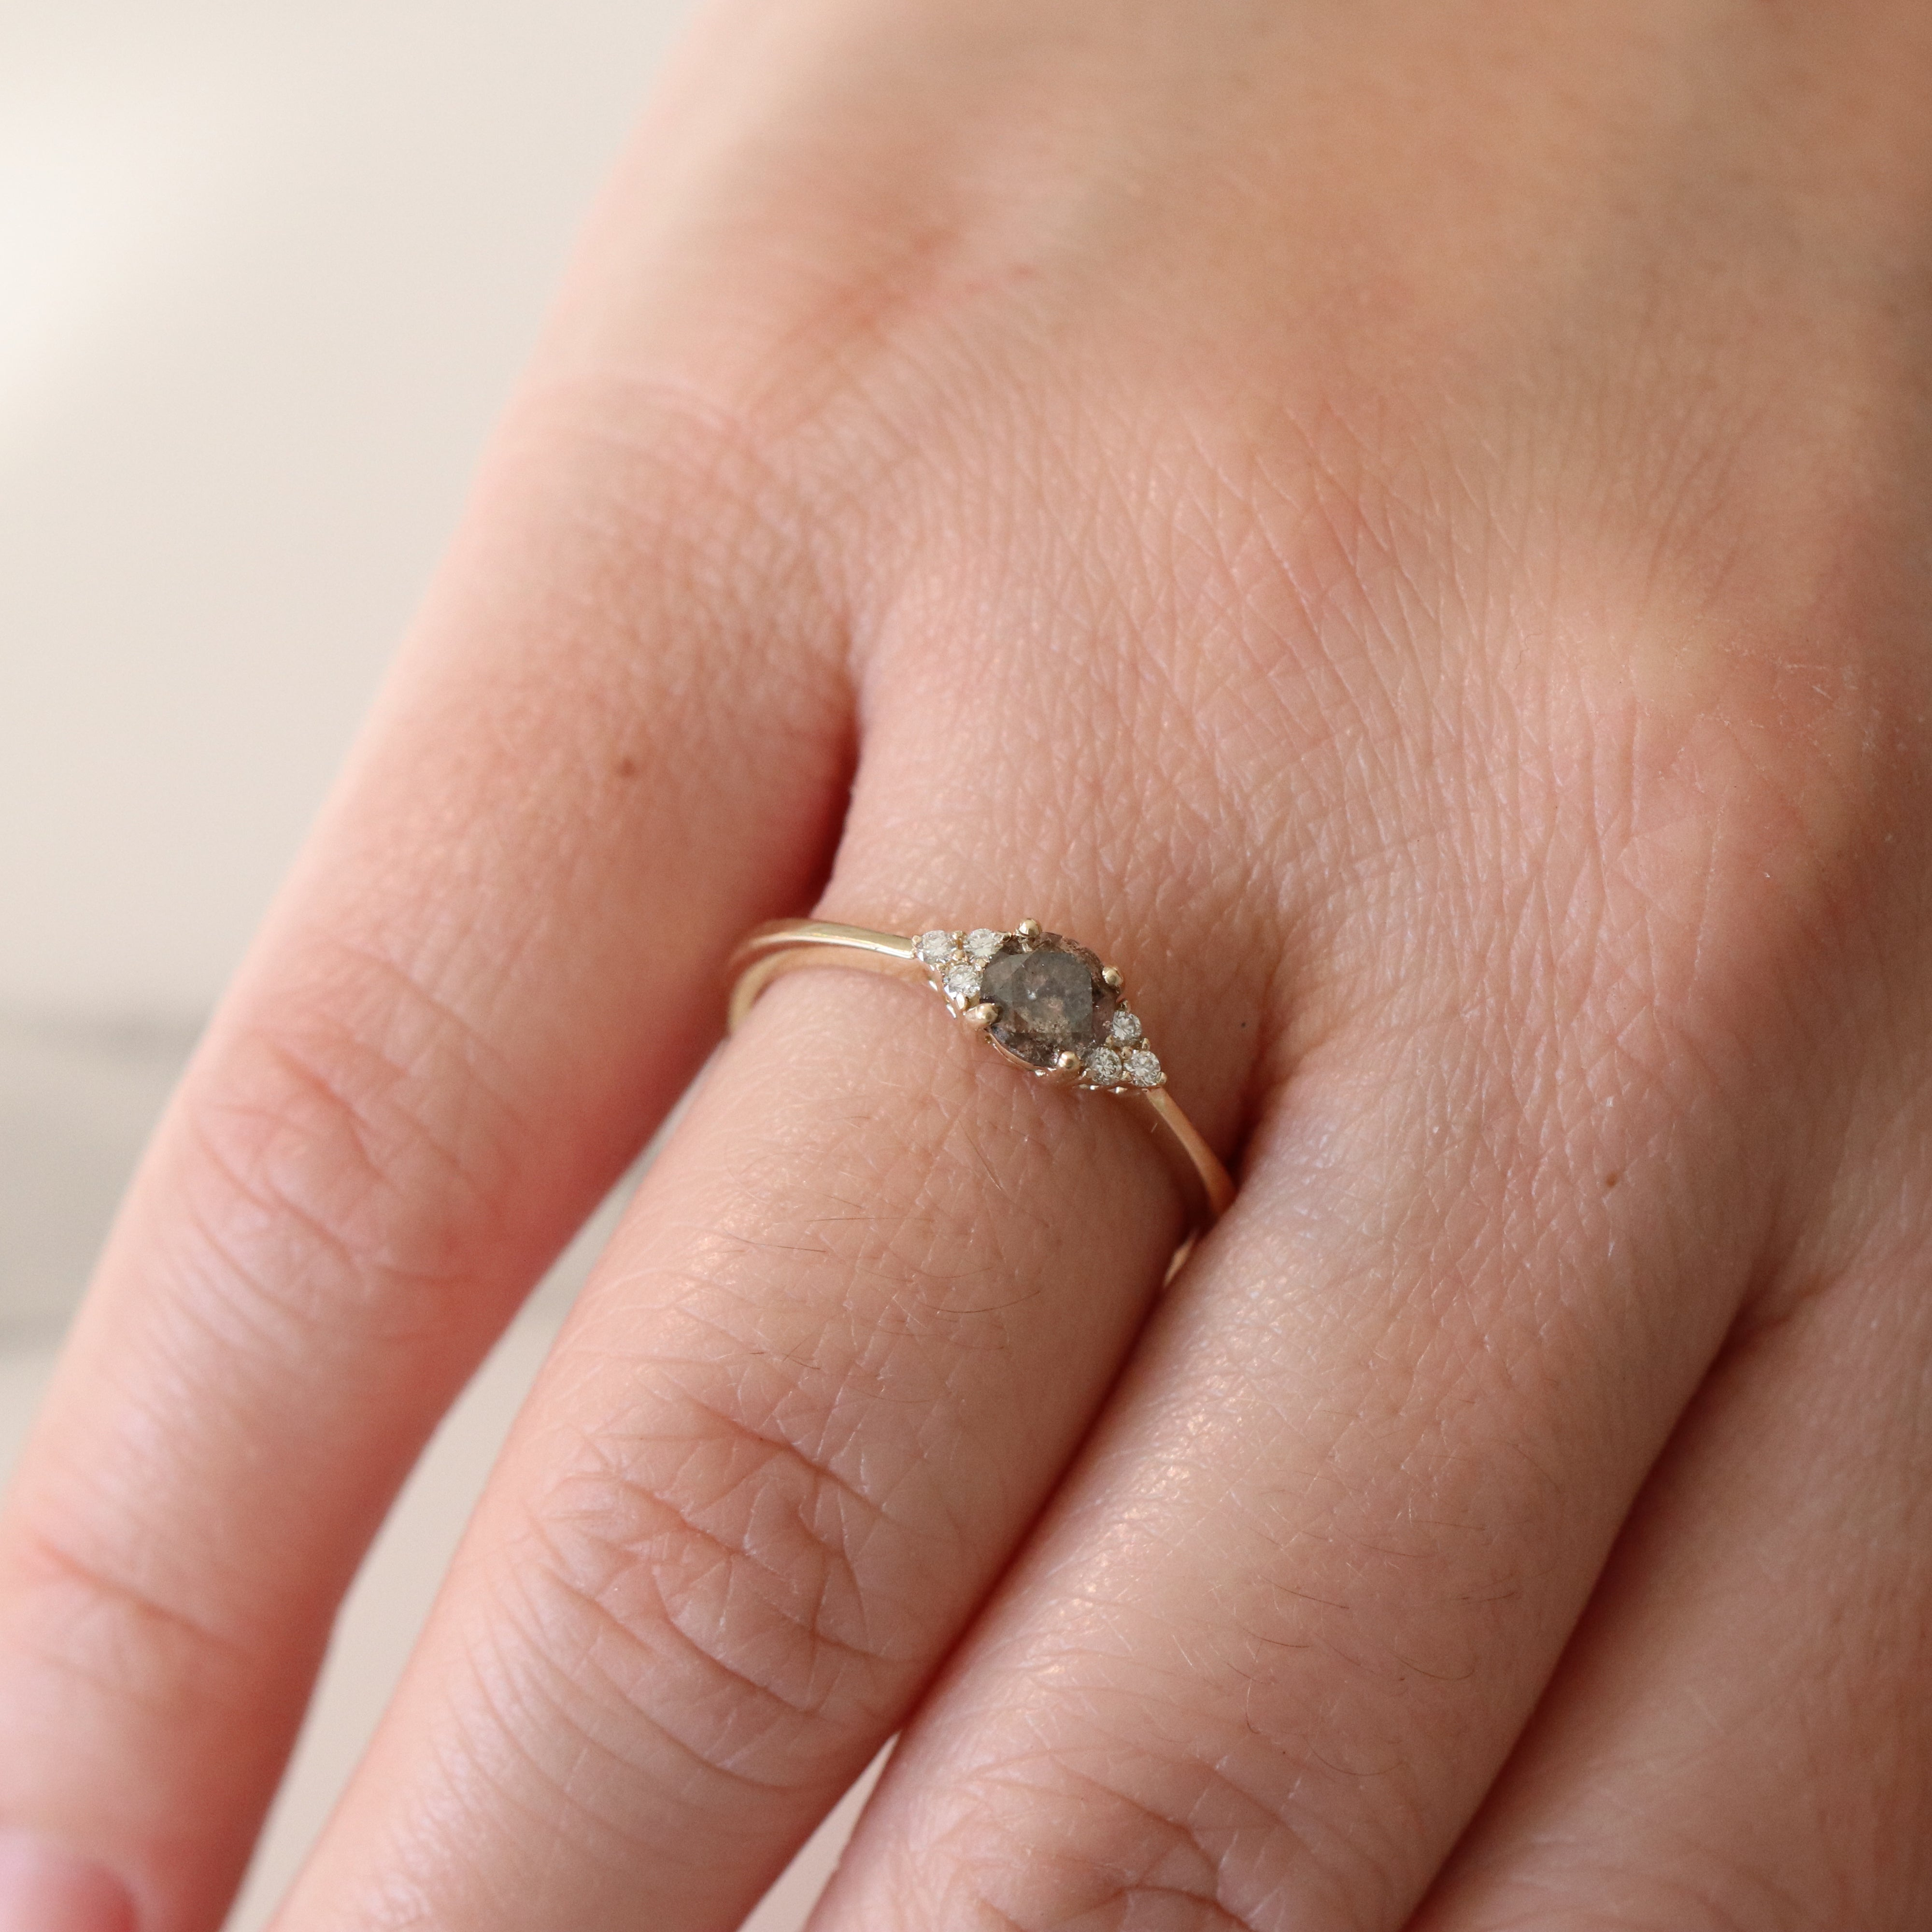 Imogene Ring with a .48 Carat Celestial Diamond in 10k Yellow Gold - Ready to Size and Ship - Salt & Pepper Celestial Diamond Engagement Rings and Wedding Bands  by Midwinter Co.